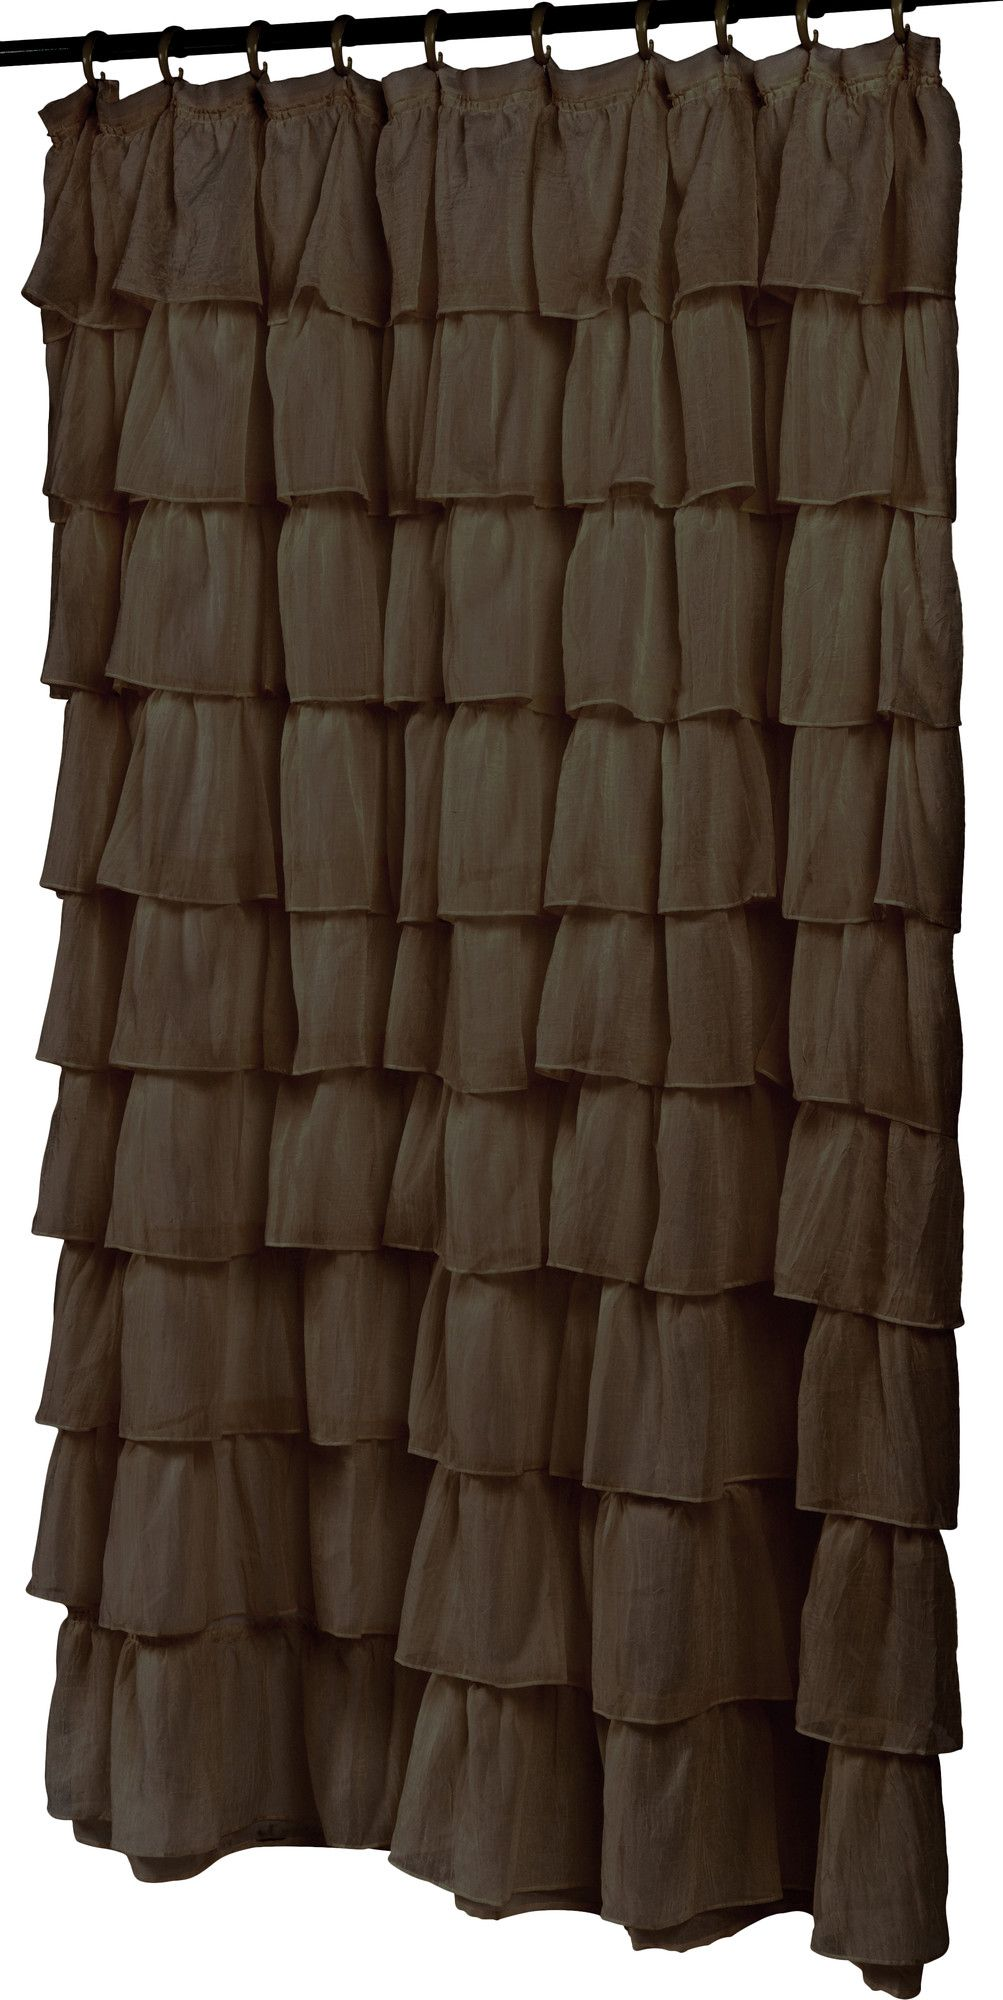 Rodemack ruffled tier shower curtain products pinterest products